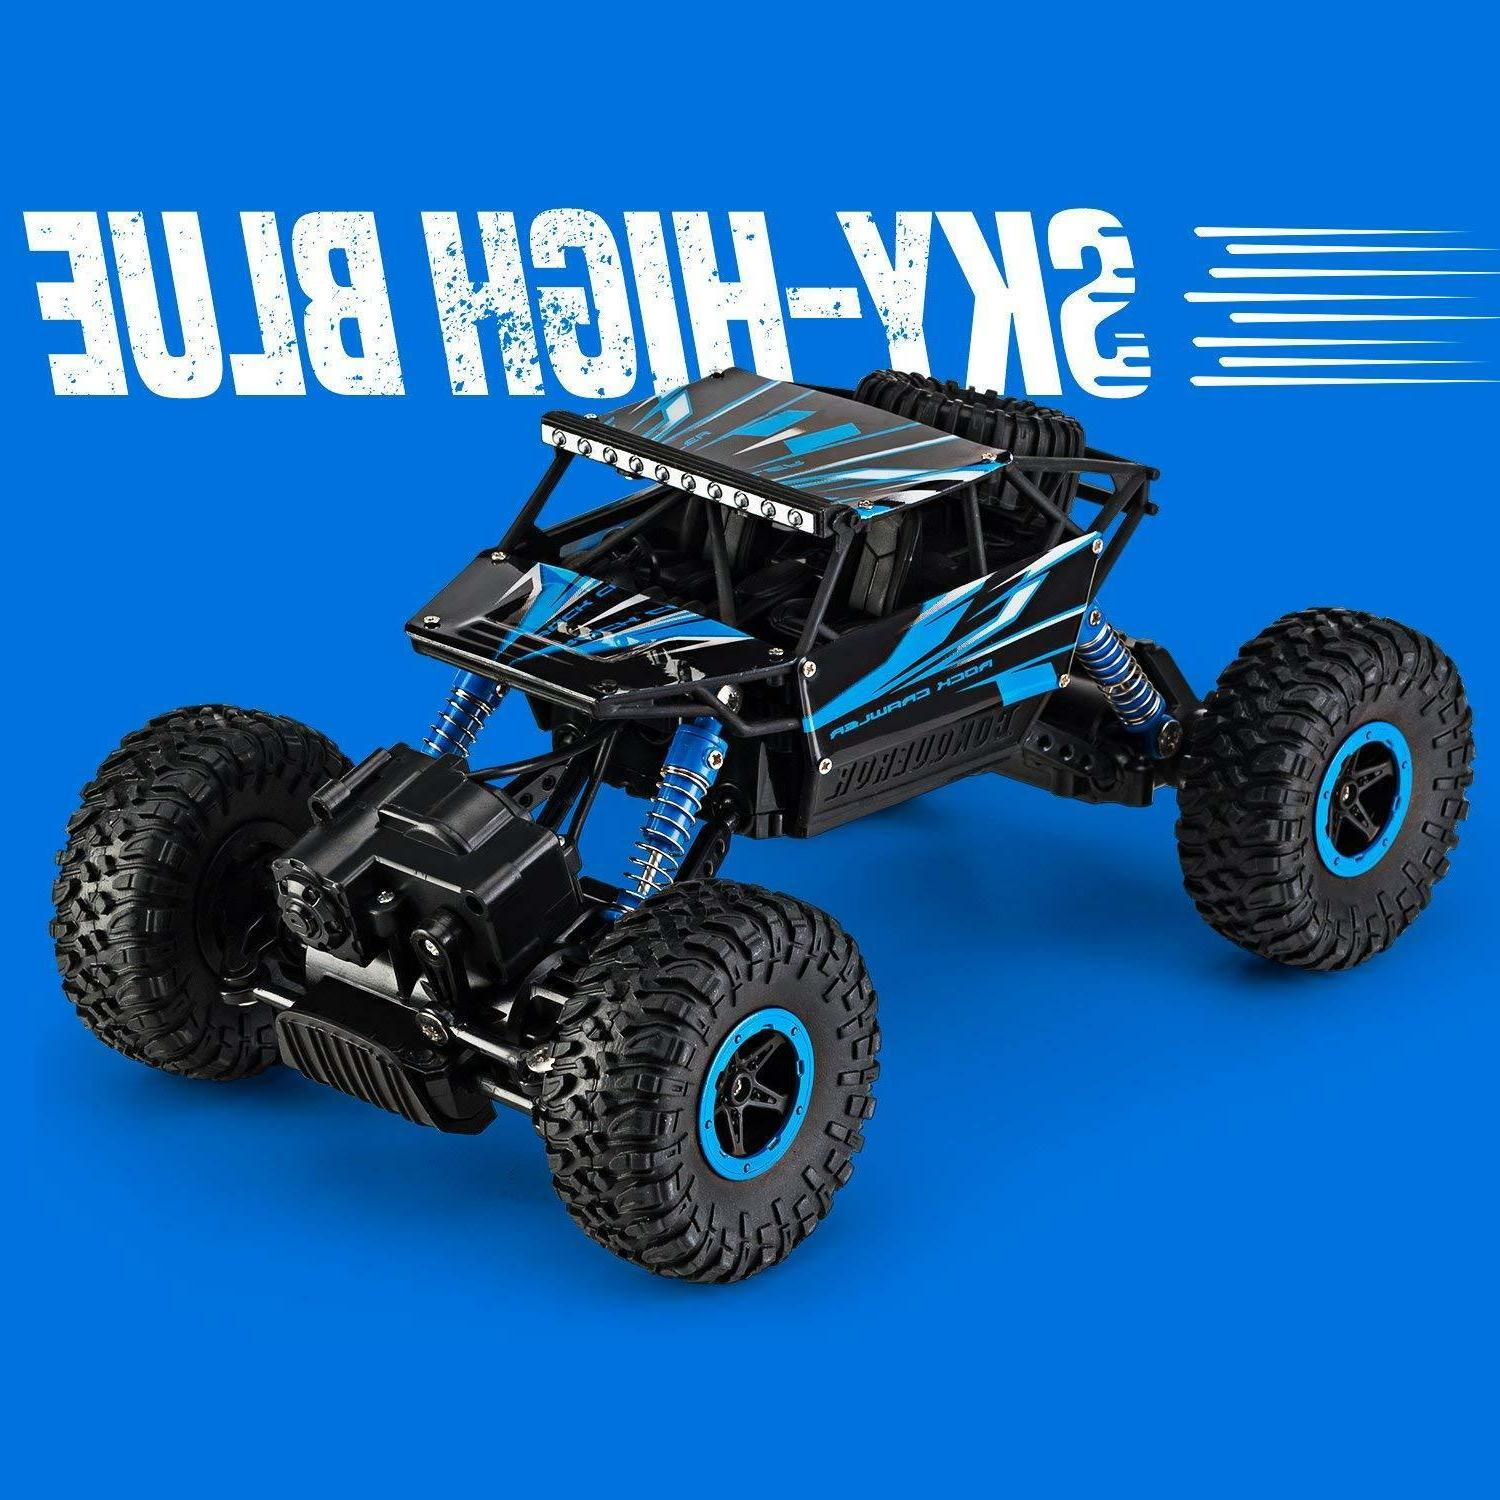 4WD Monster 1/18 Crawler Vehicle 2.4Ghz Remote Control Car